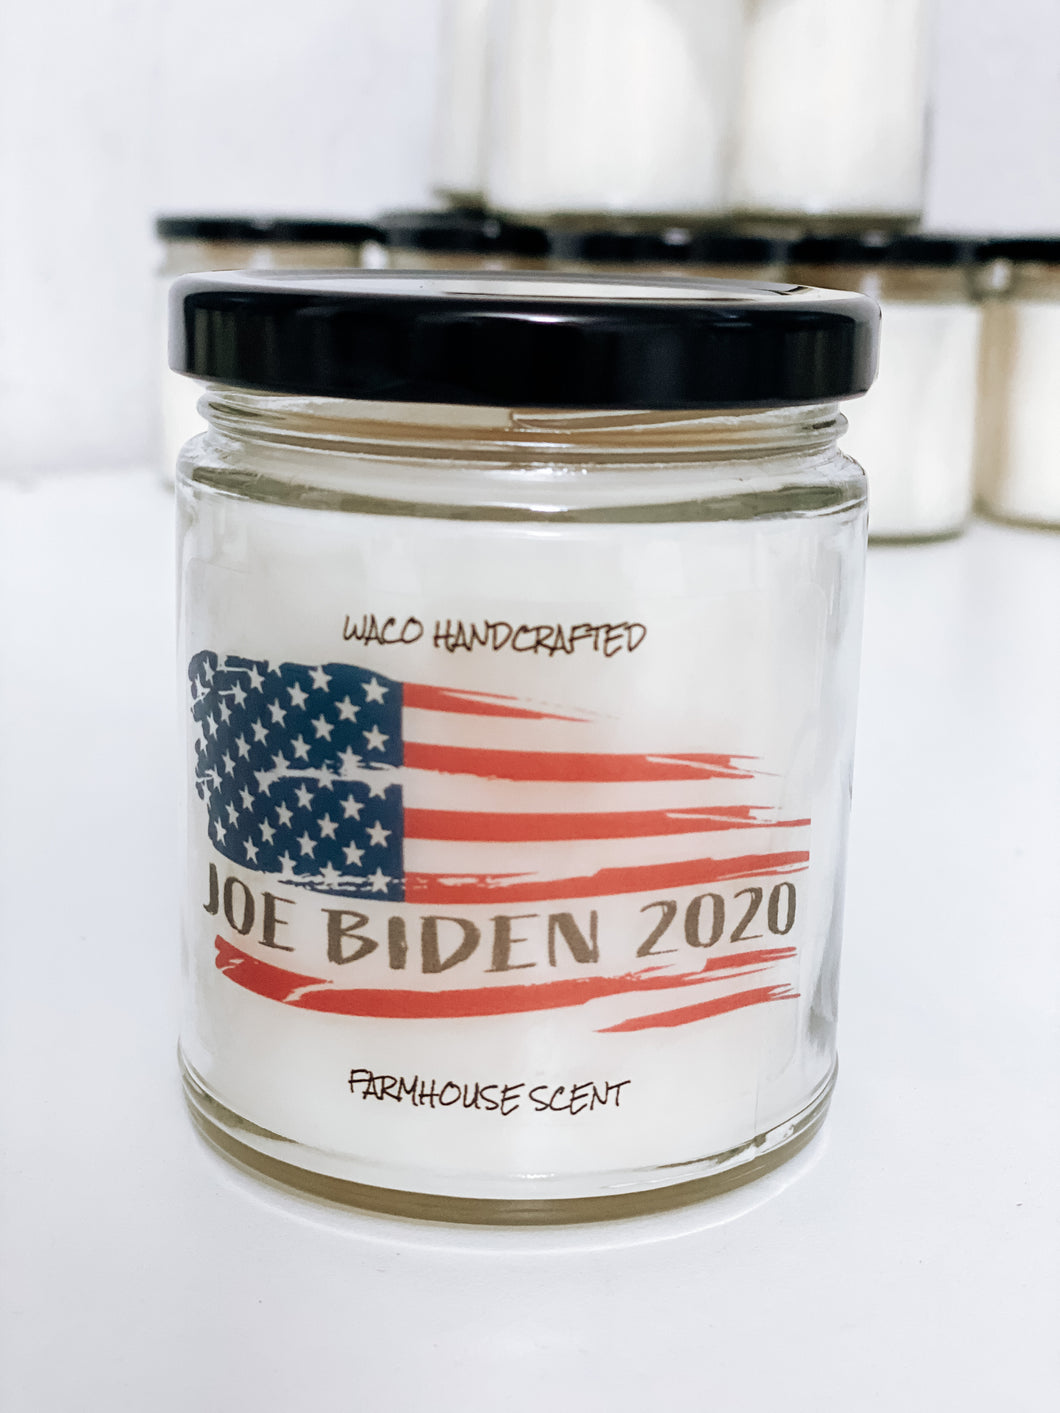 Joe Biden 2020 Flag Scented Candle | 9 oz or 16 oz | Novelty Candle - Waco Handcrafted